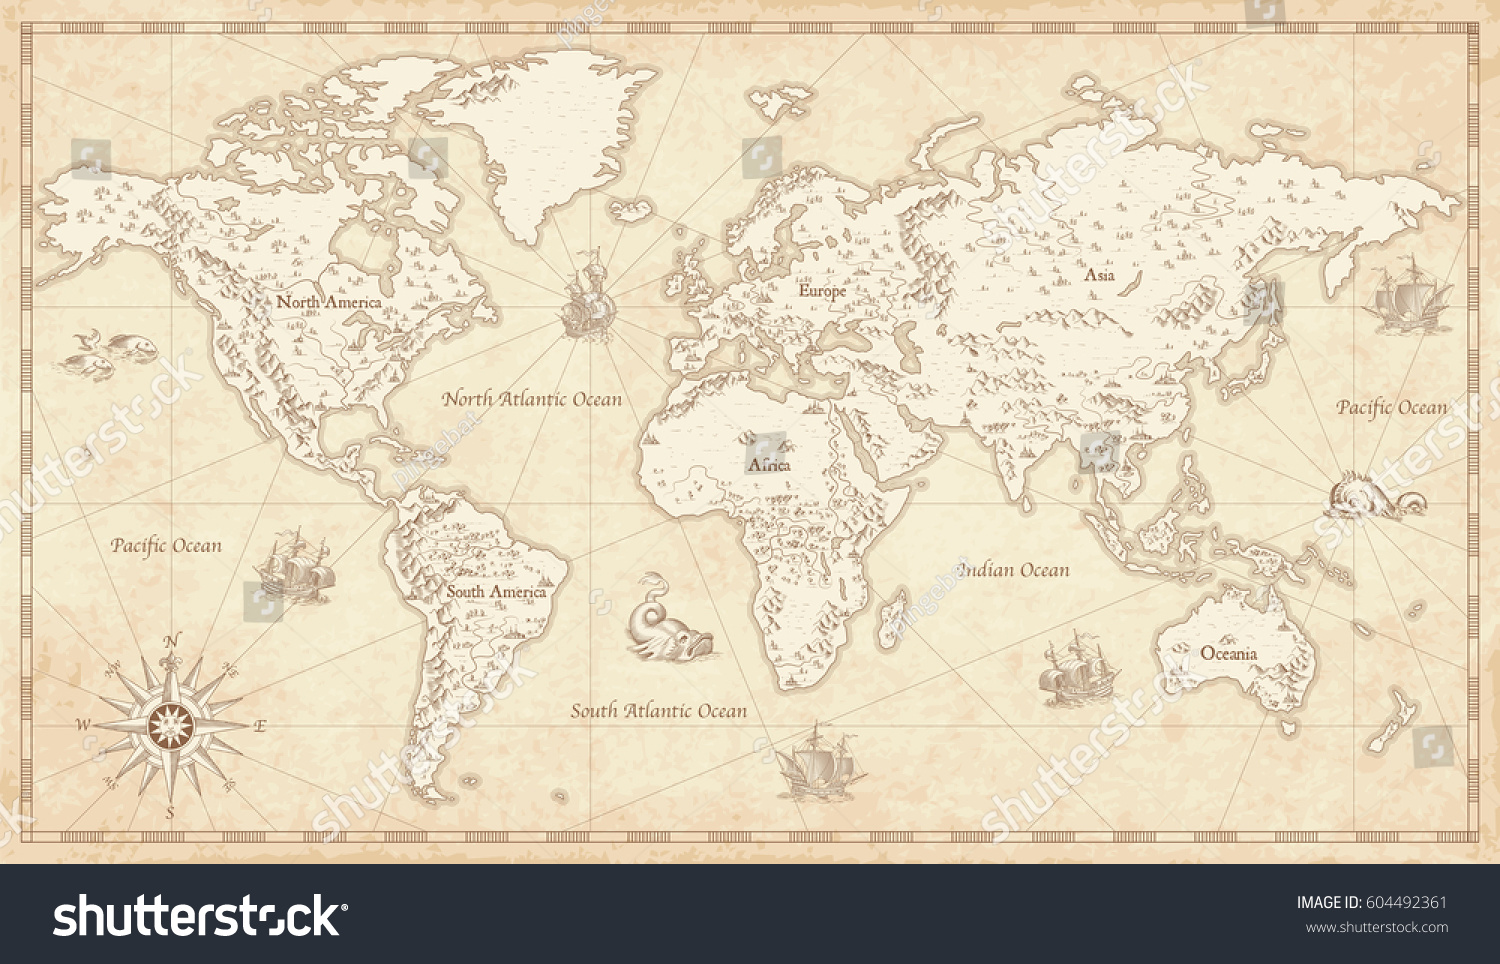 Great Detail Illustration of the world map in vintage style with mountains, trees, cities and main rivers on a old parchment background.  #604492361